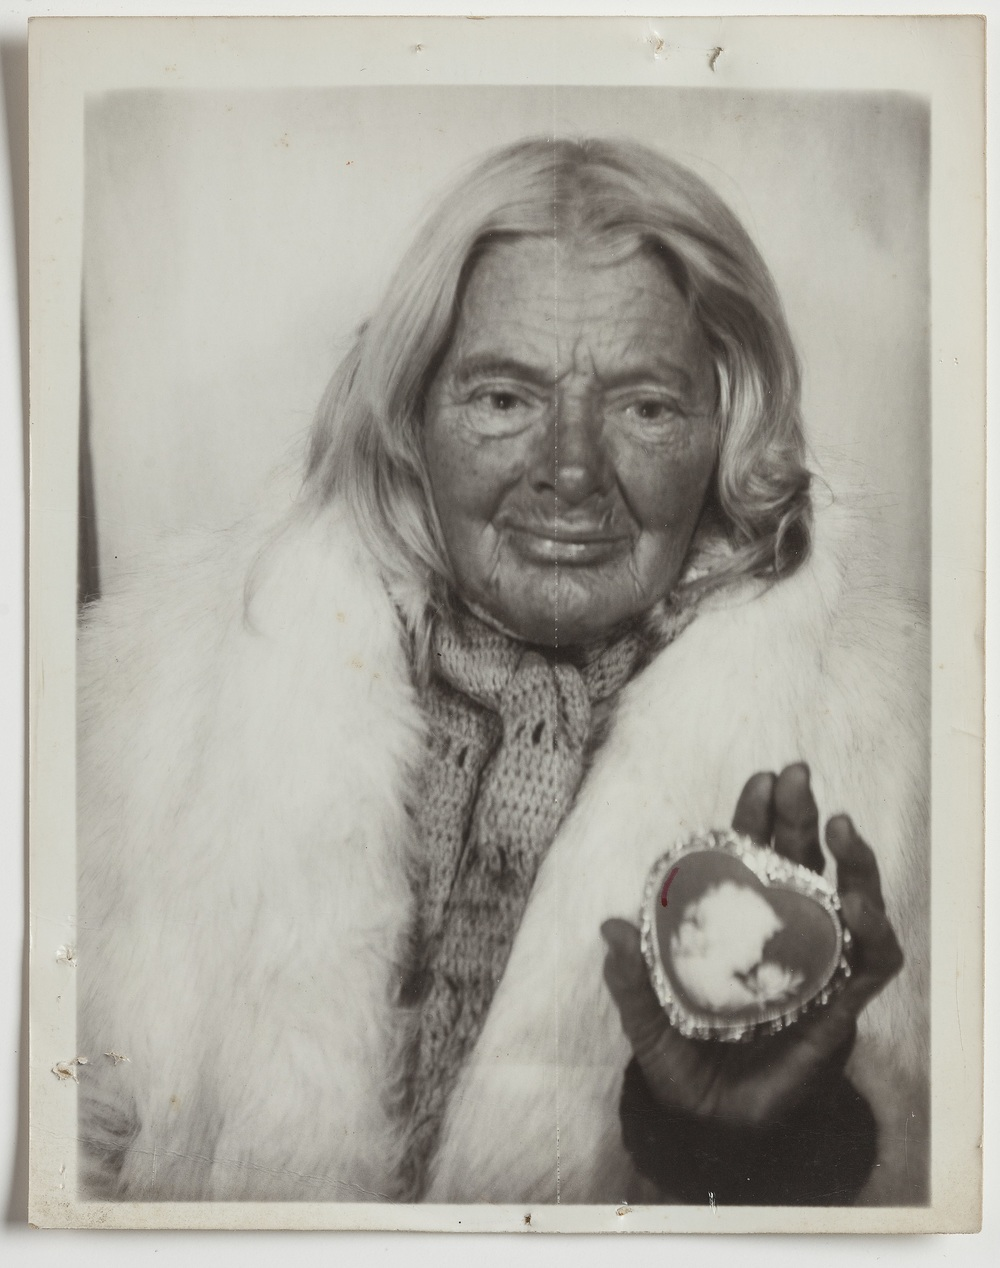 Lee Godie, Untitled (in white fur stole with heart-shaped cameo), n.d.; gelatin silver print; 4 3/4 x 3 3/4 in. Collection of Jim Zanzi, WI.